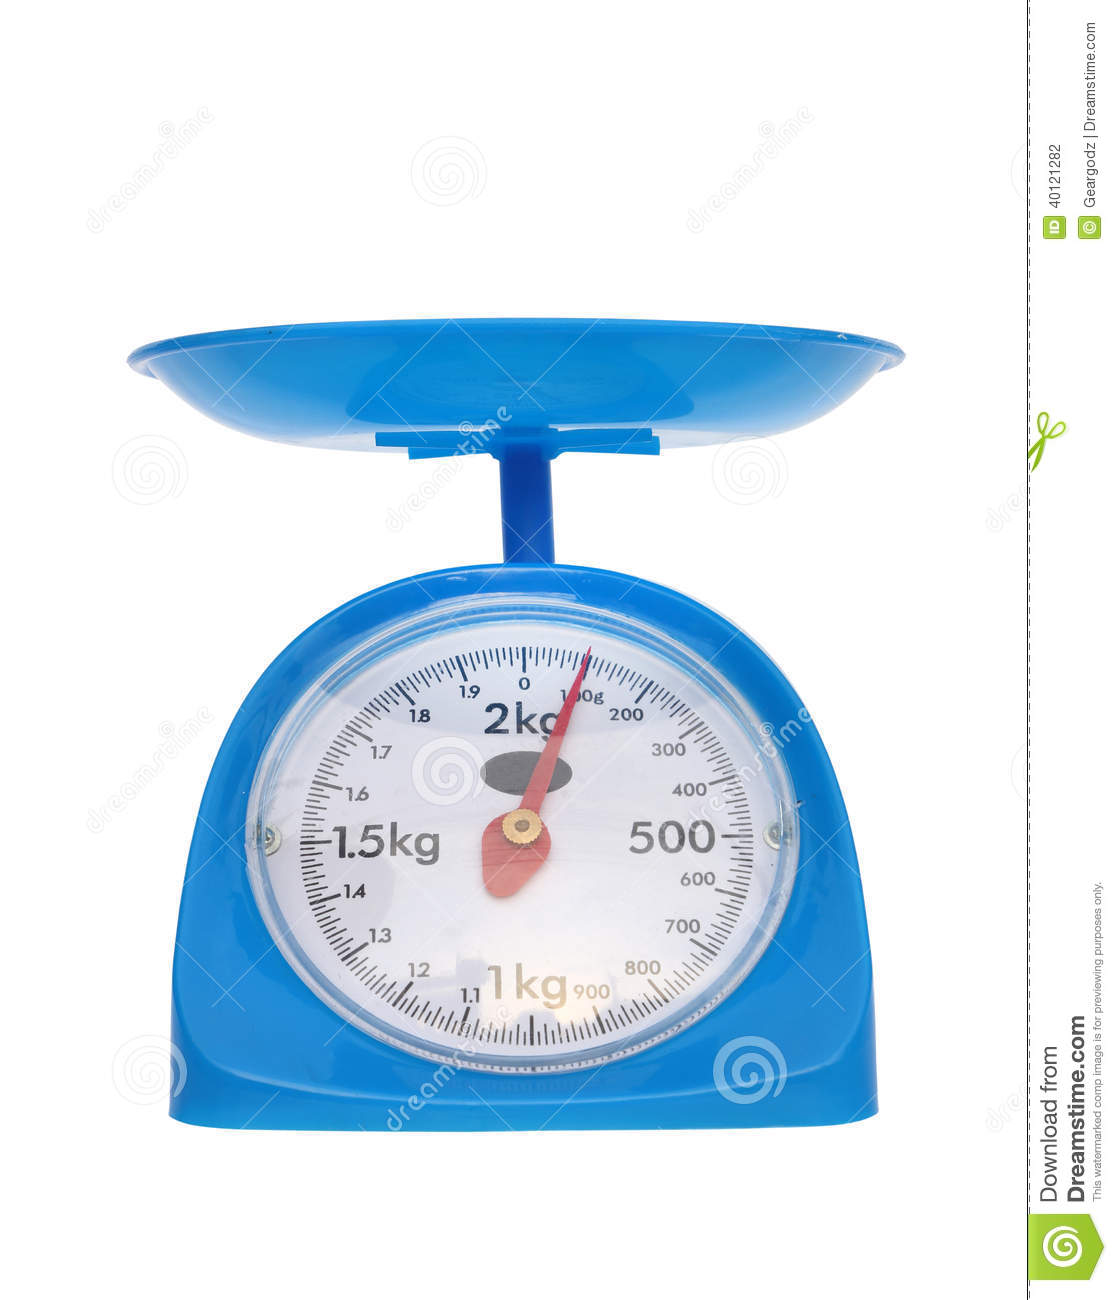 Weight measurement balance isolated on white background (100 gram).